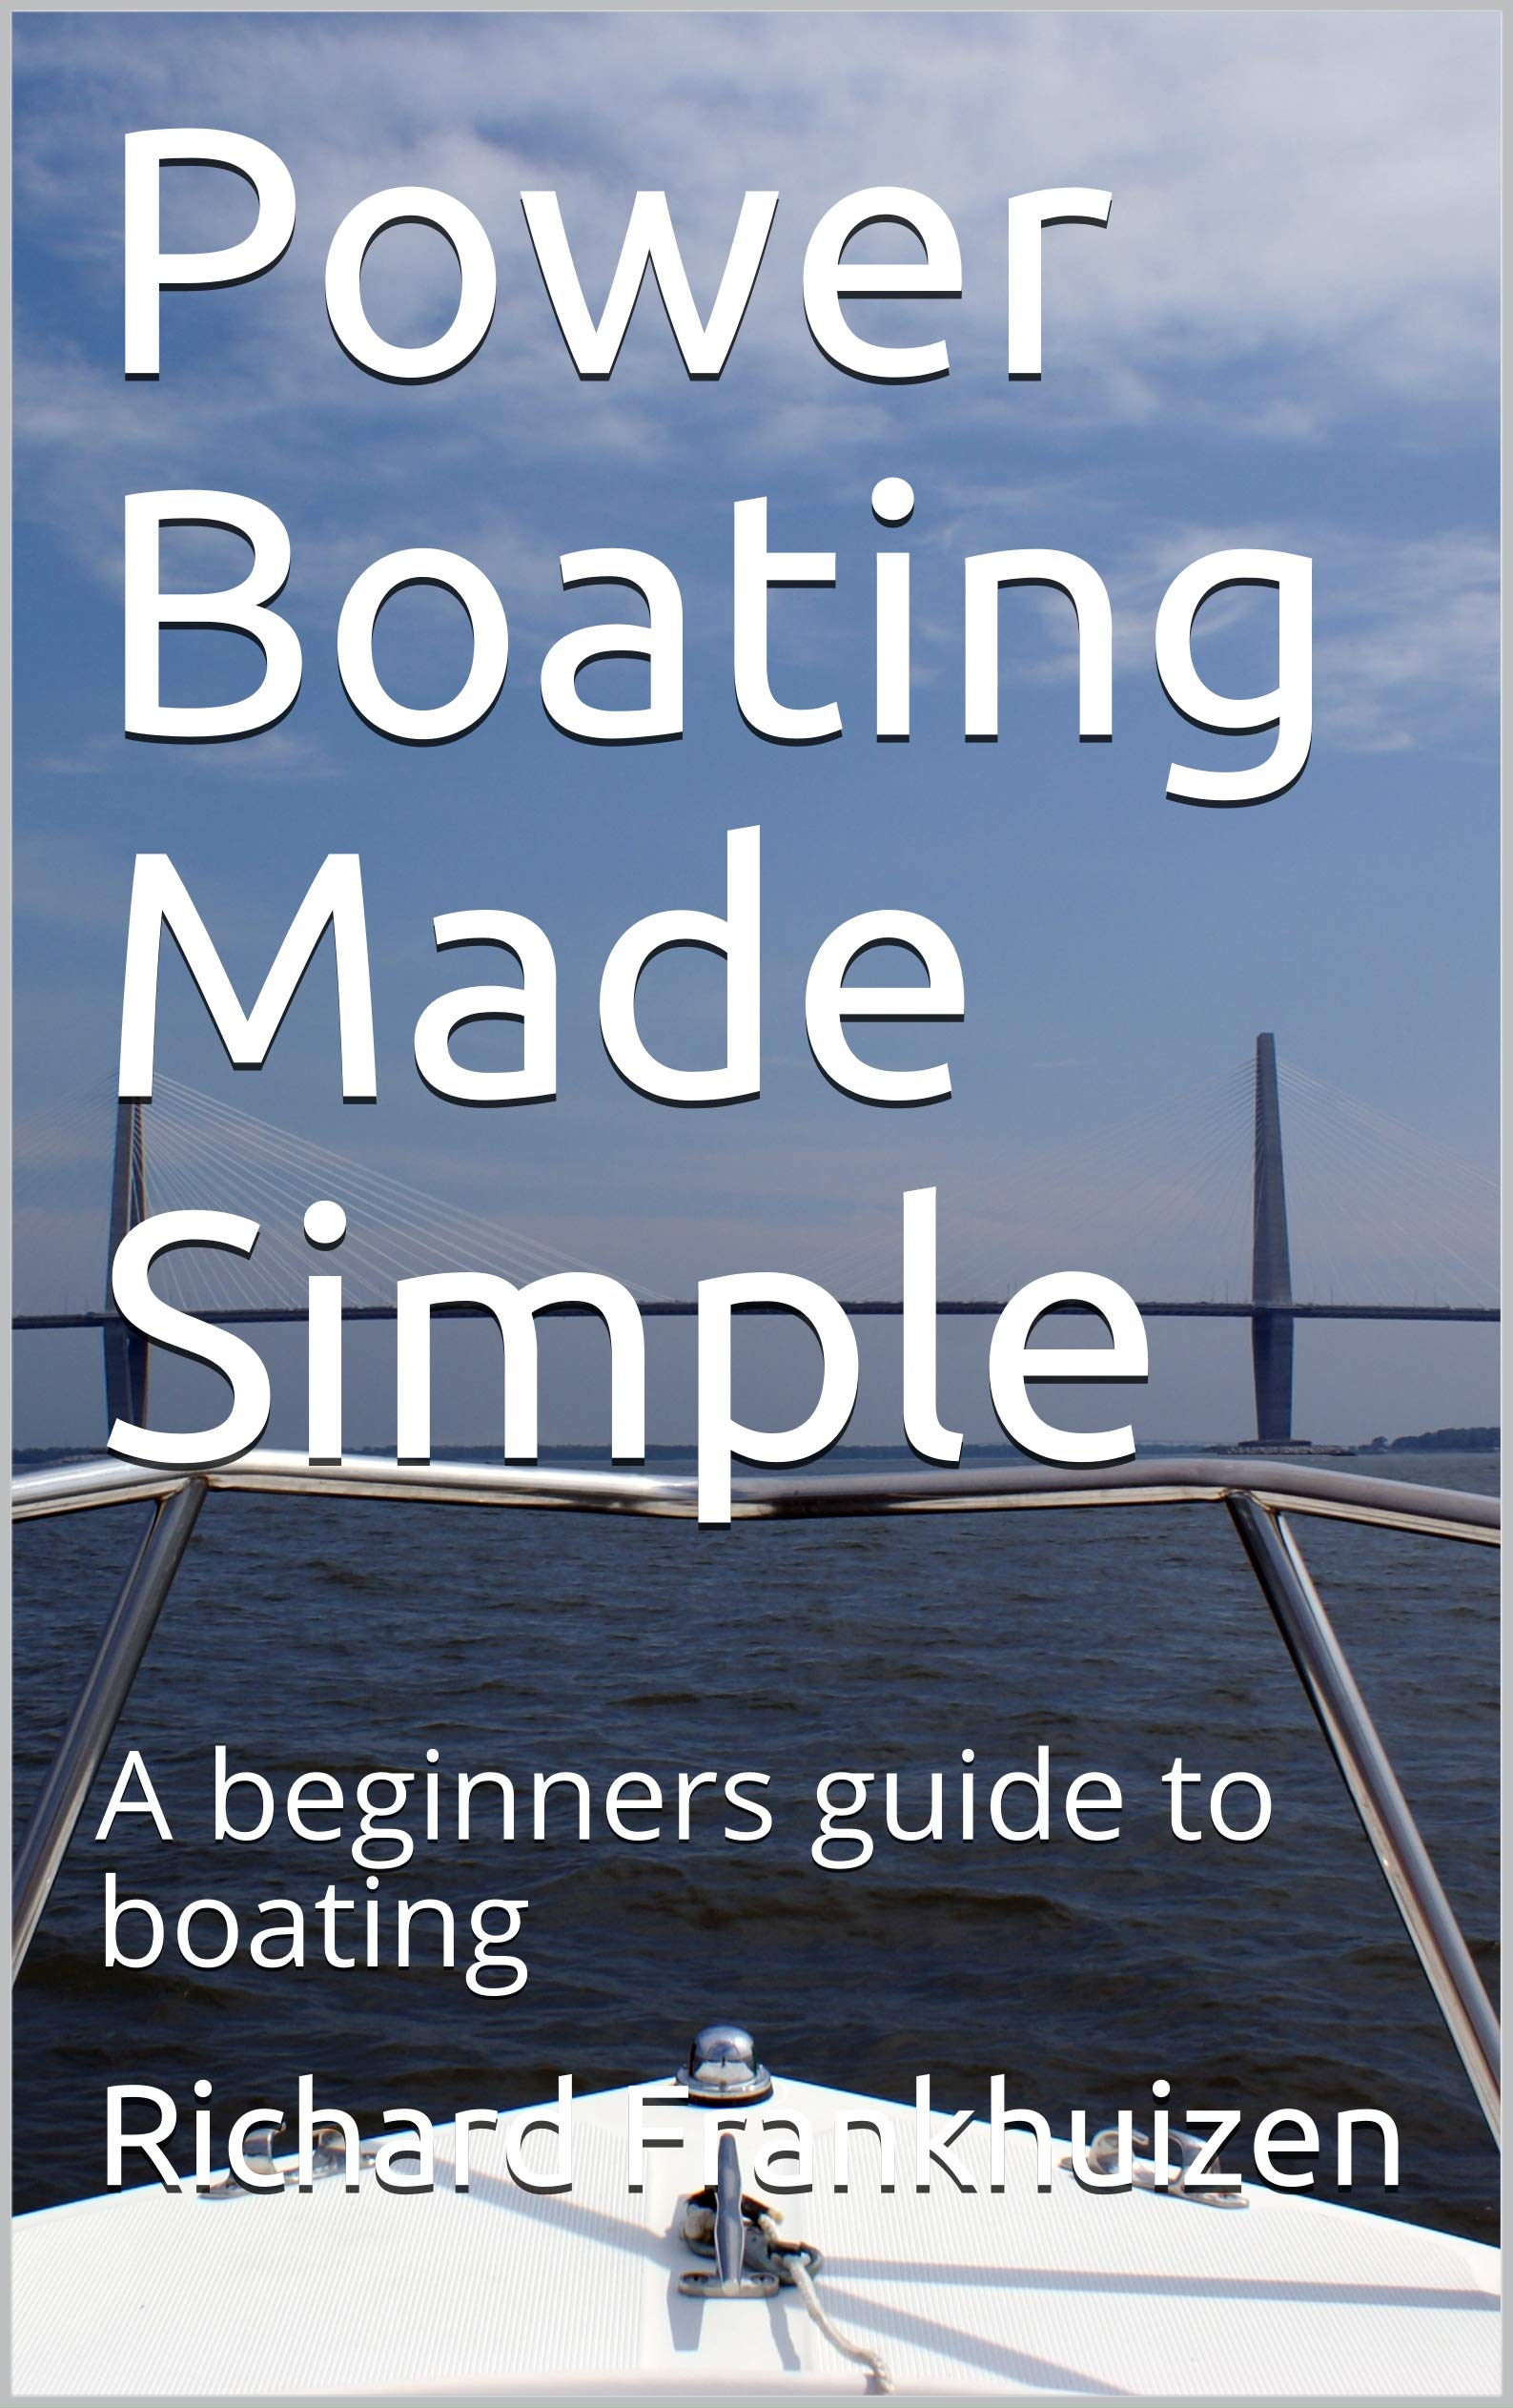 Power Boating Made Simple: A beginners guide to boating